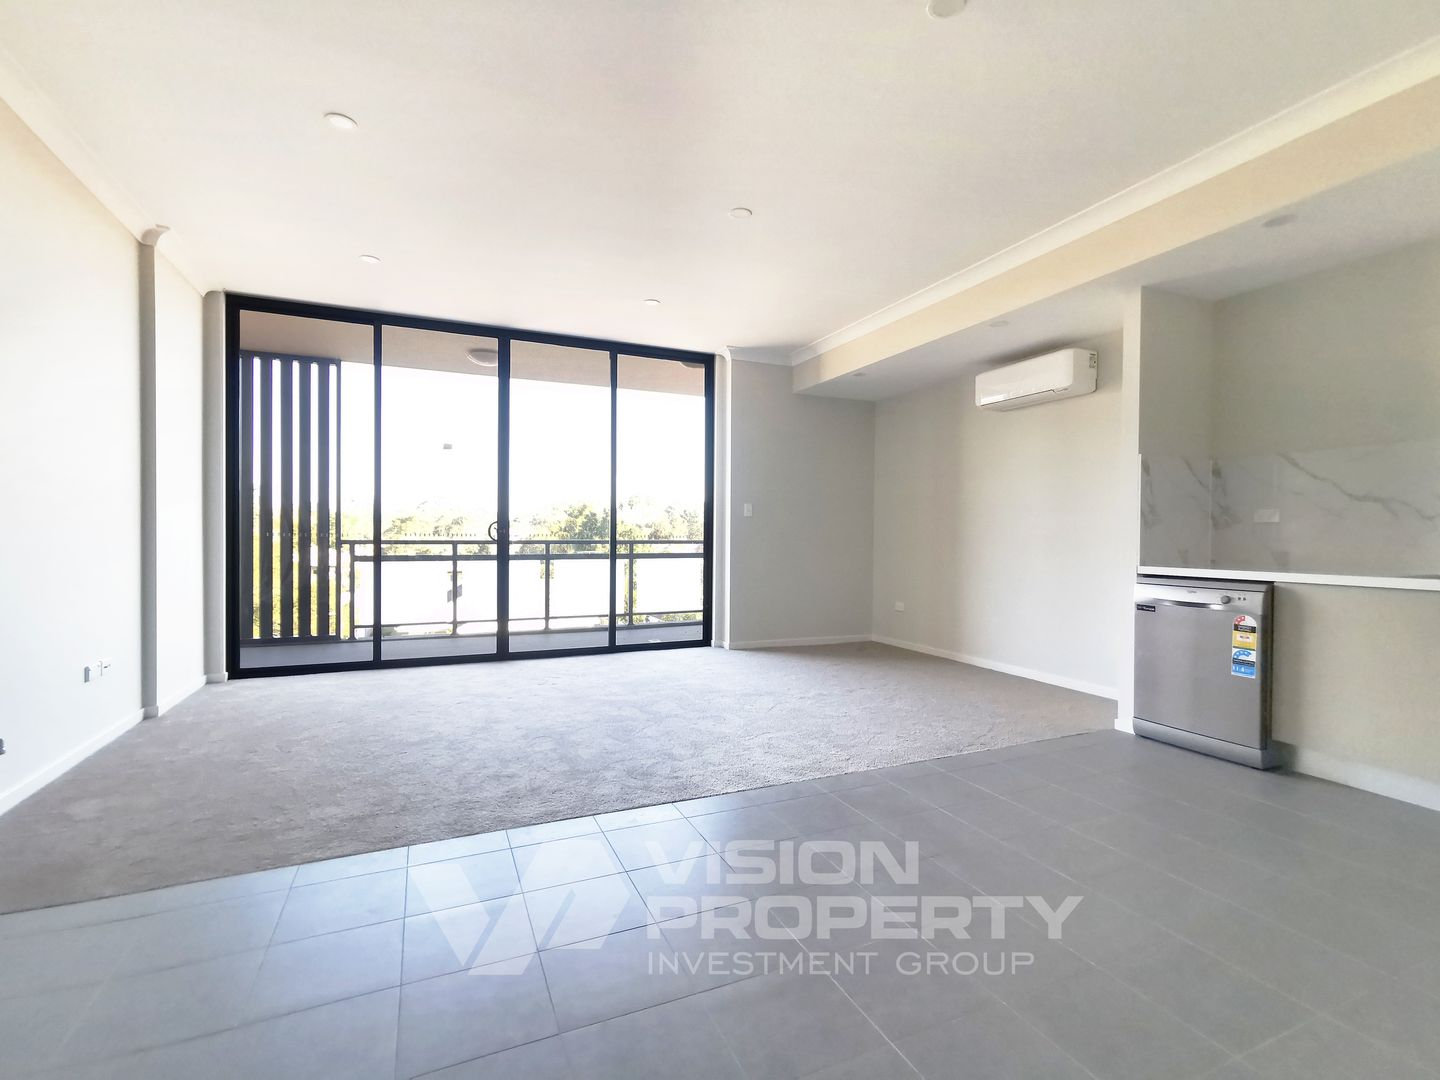 25-31 Hope Street, Penrith NSW 2750, Image 0